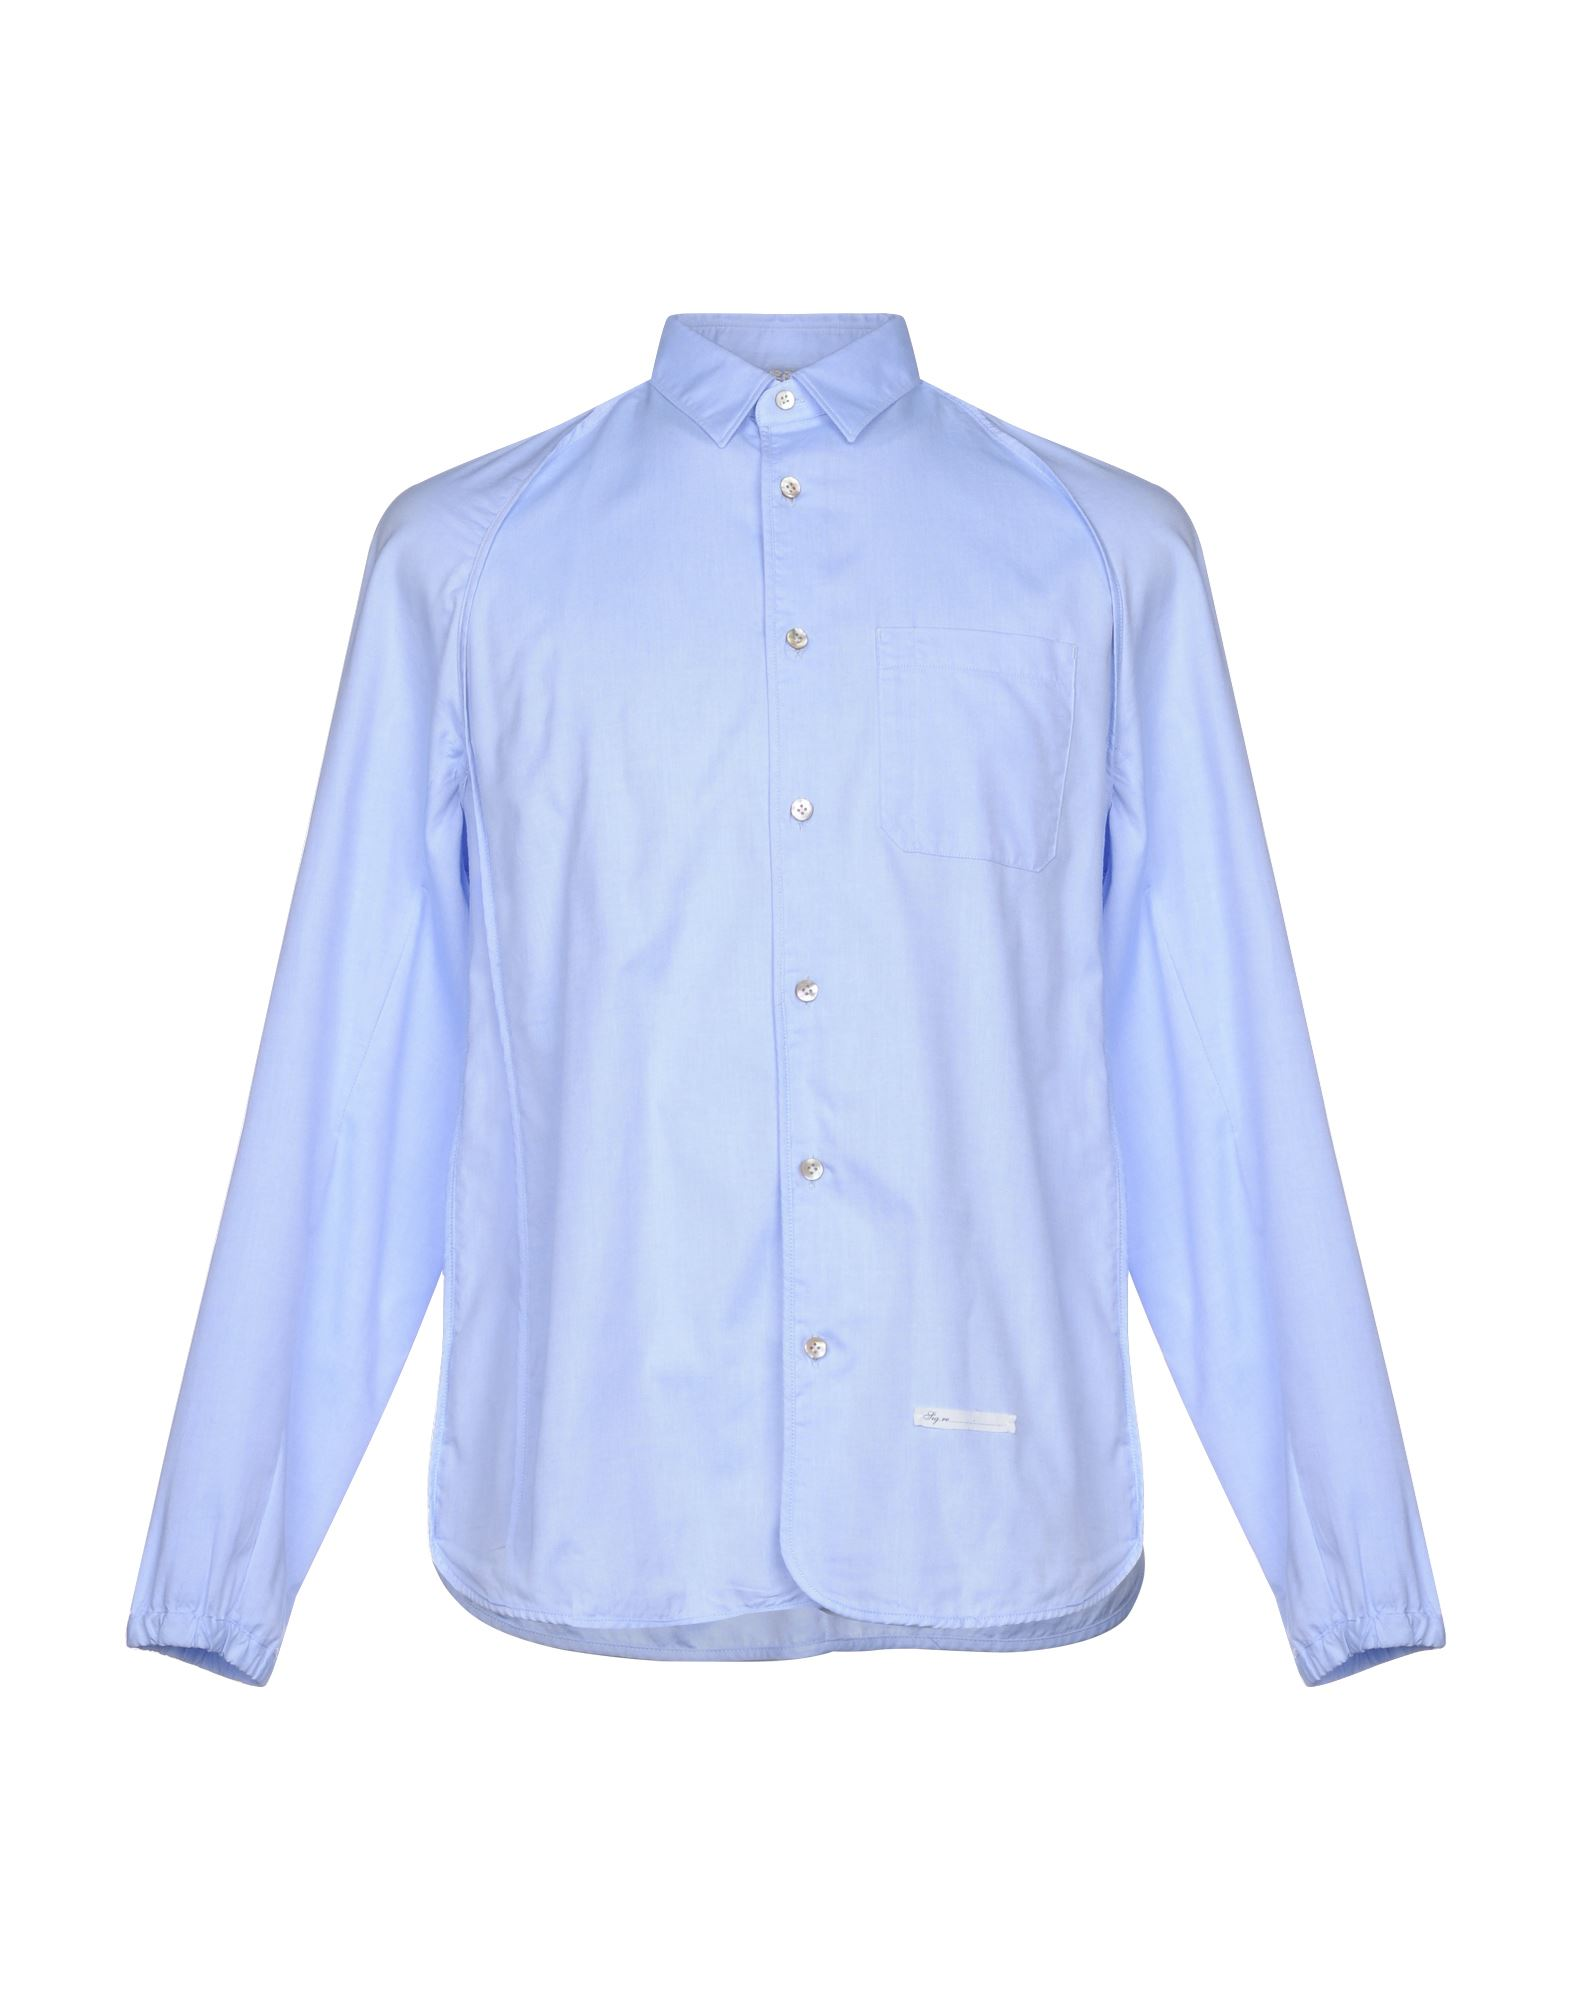 DNL Solid Color Shirt in Sky Blue